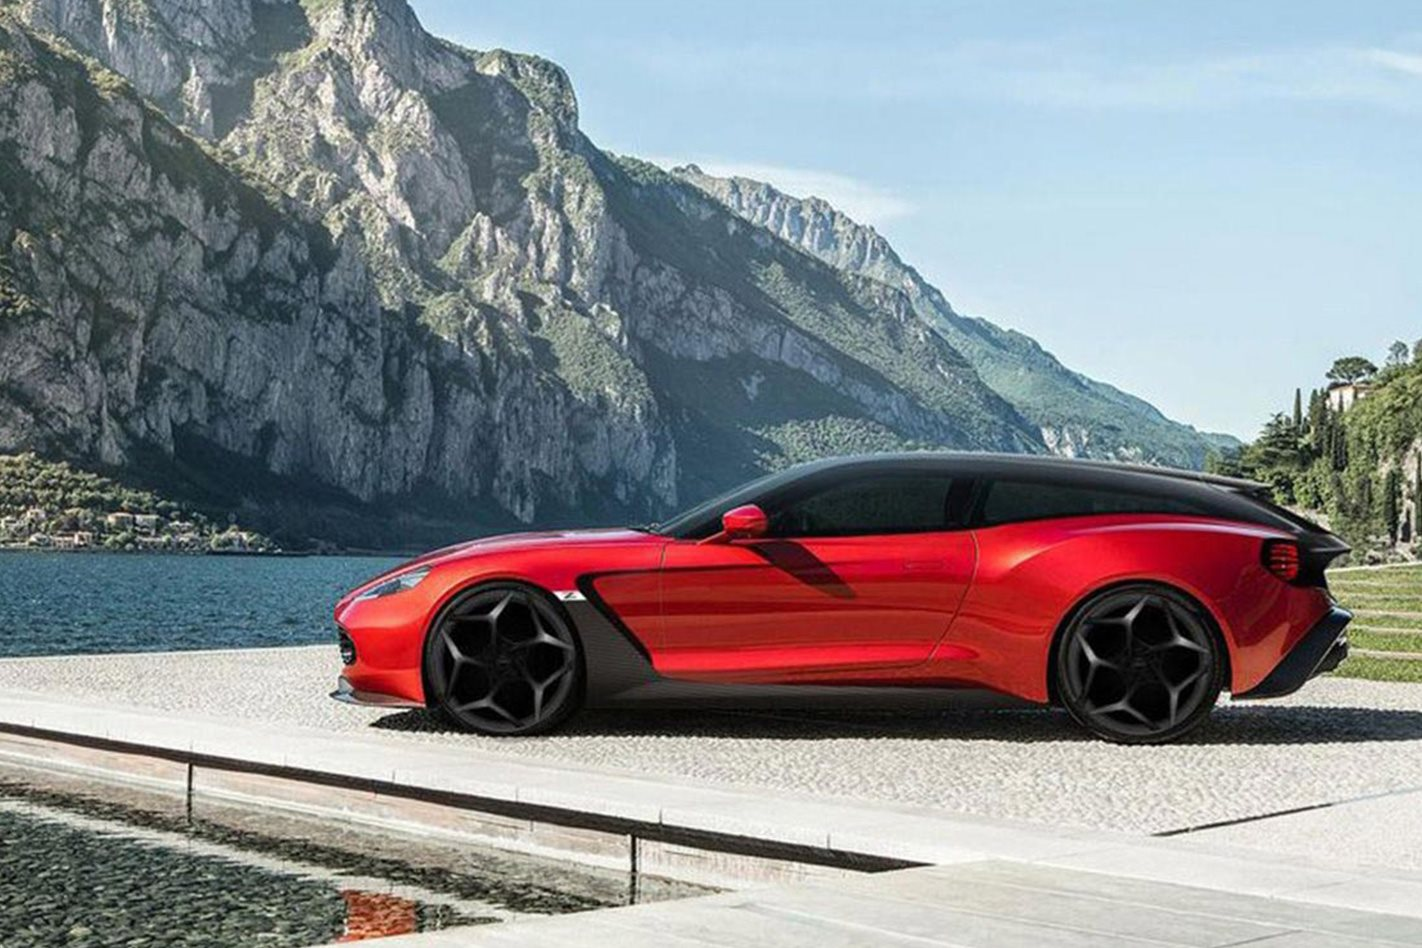 Aston Martin Vanquish Zagato Shooting Brake Speedster